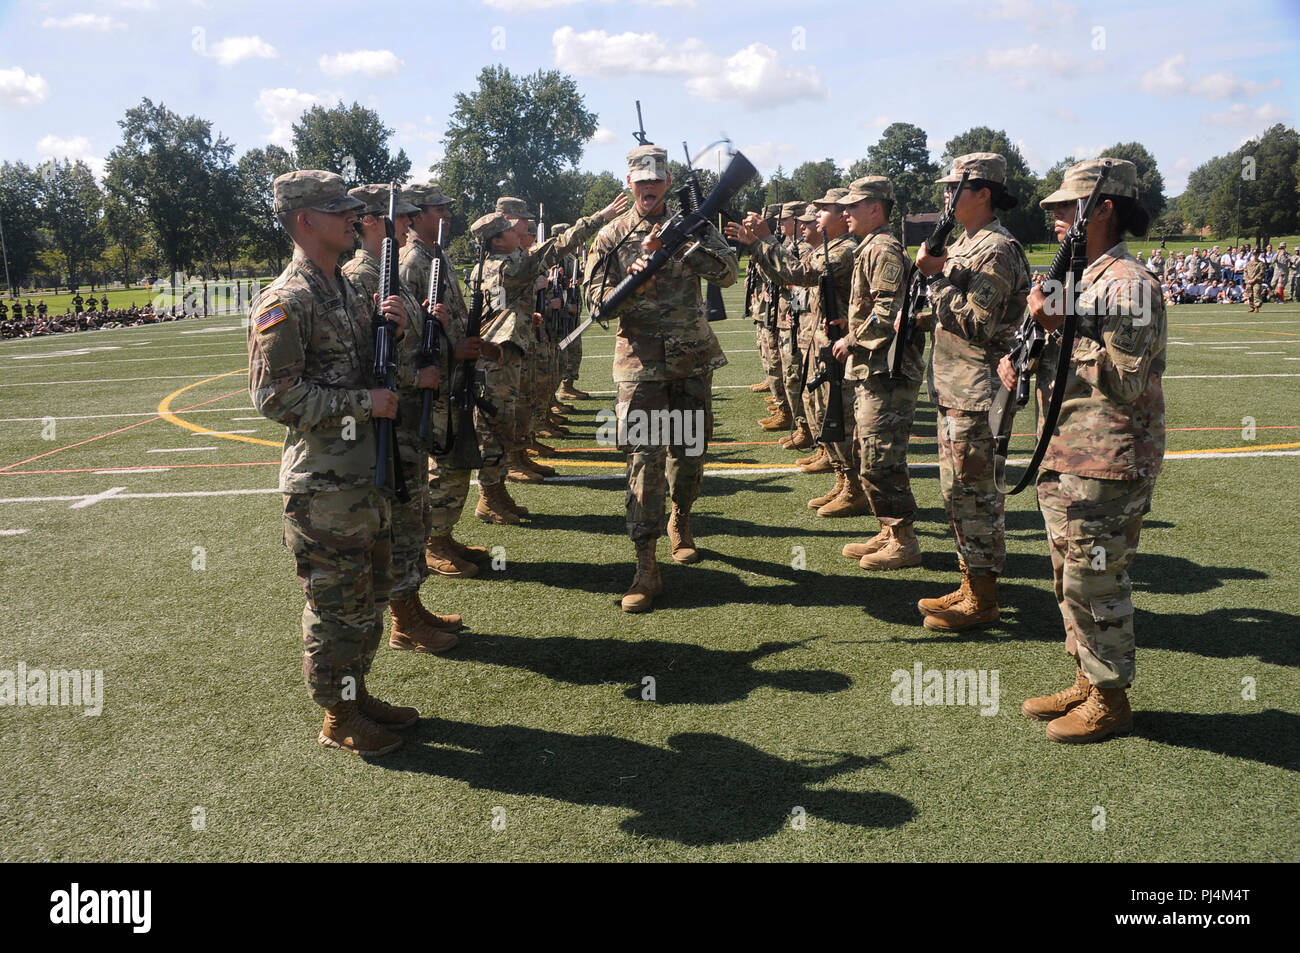 A platoon leader twirls his weapon while marching through opposing ranks of Soldiers who completed weapon tosses to each other as he passed through during the 23rd Quartermaster Brigade Drill and Ceremony Competition Aug. 23 at Fort Lee. Stock Photo